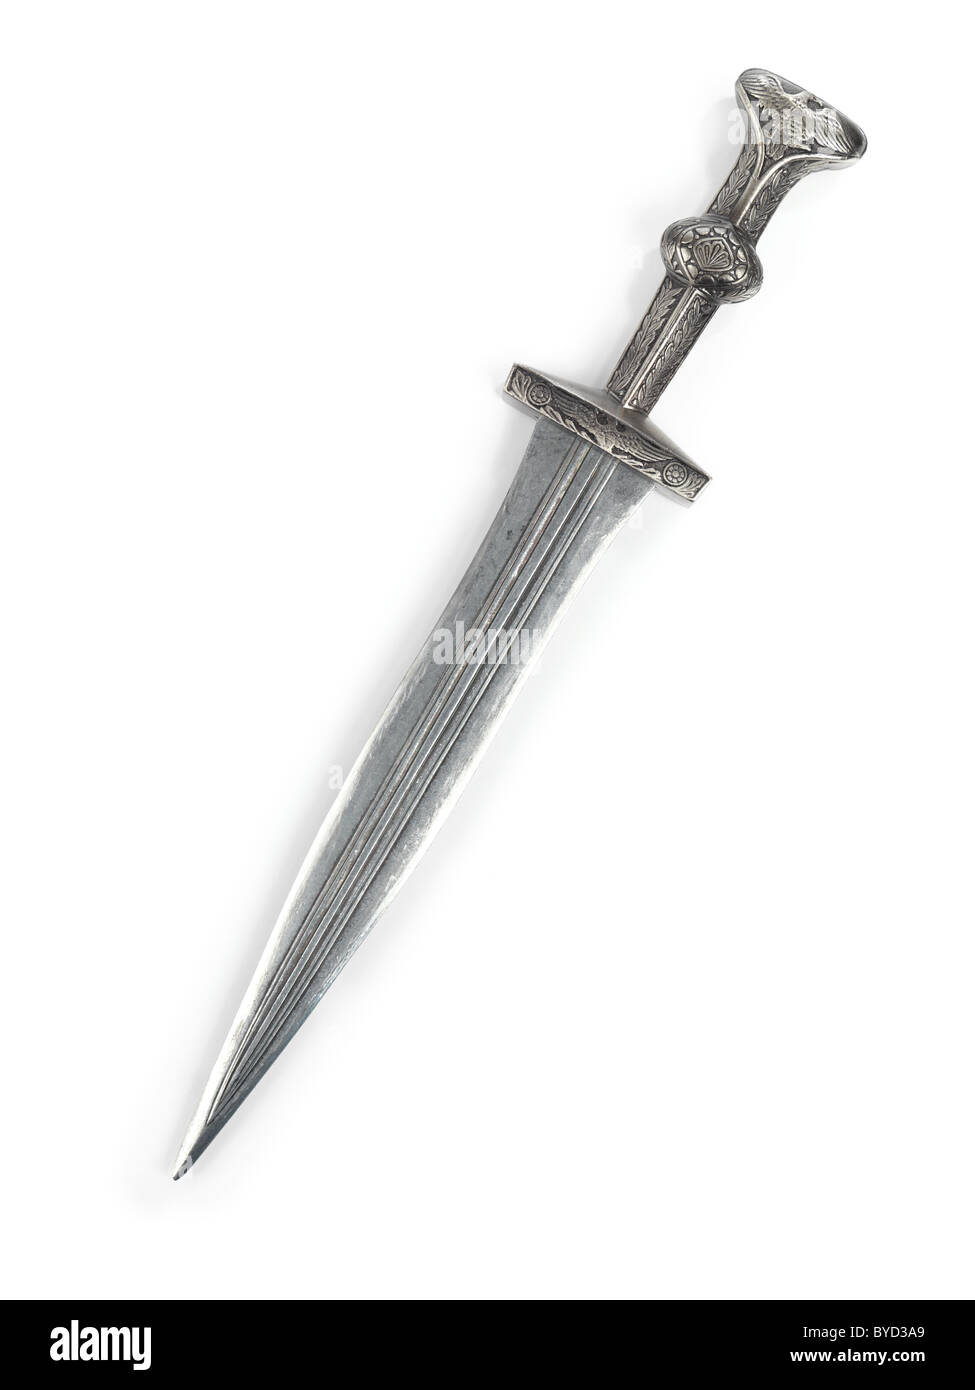 Antique Roman dagger short sword isolated on white background - Stock Image